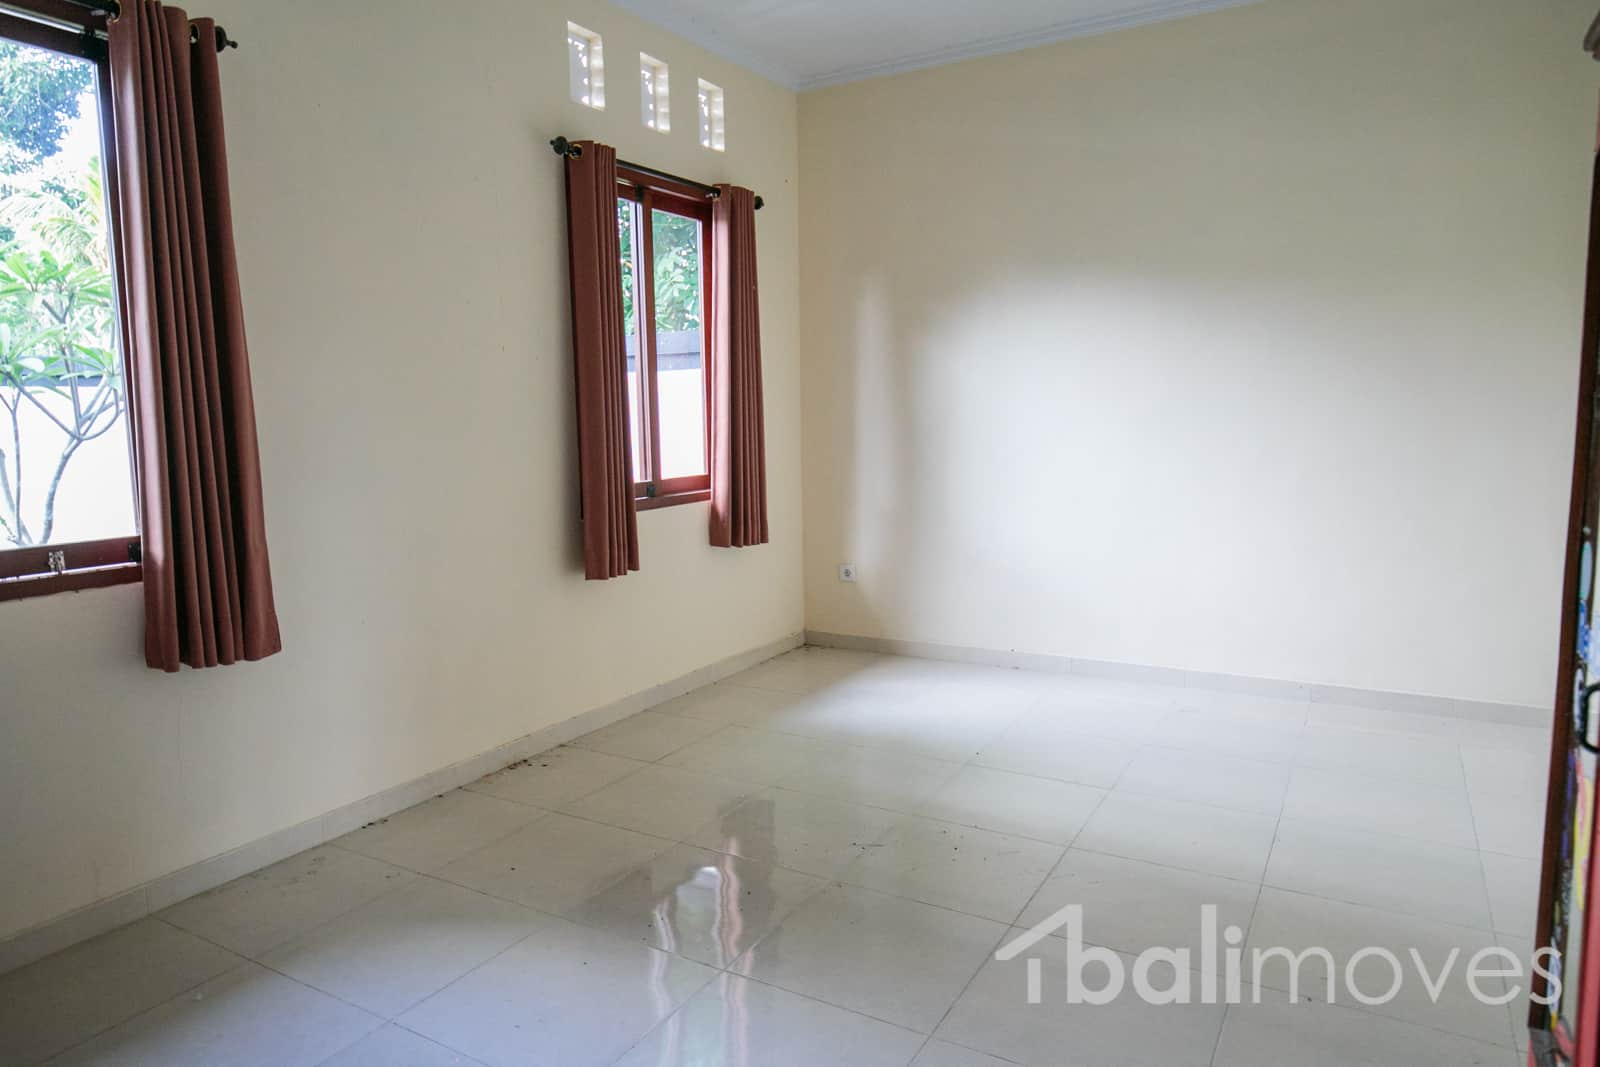 25 Bedroom House A Three Bedroom Nice House For Rent Sanur 39s Local Agent